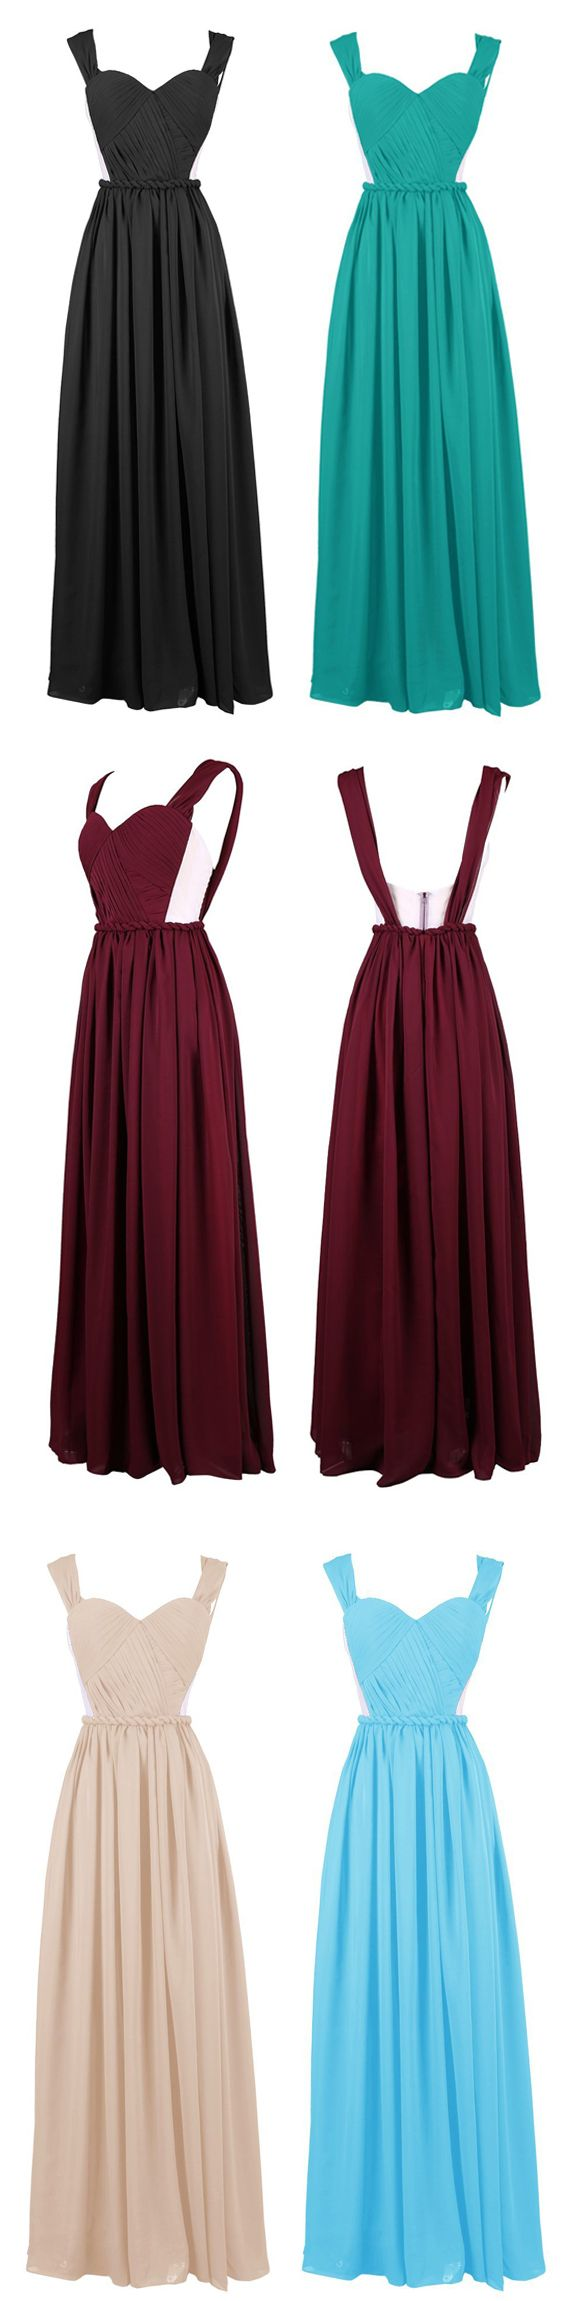 Delicate A-line Sweetheart Straps Chiffon Long Prom Dress With Sexy Cutout #prom #bridesmaid #evening #wedding #dress